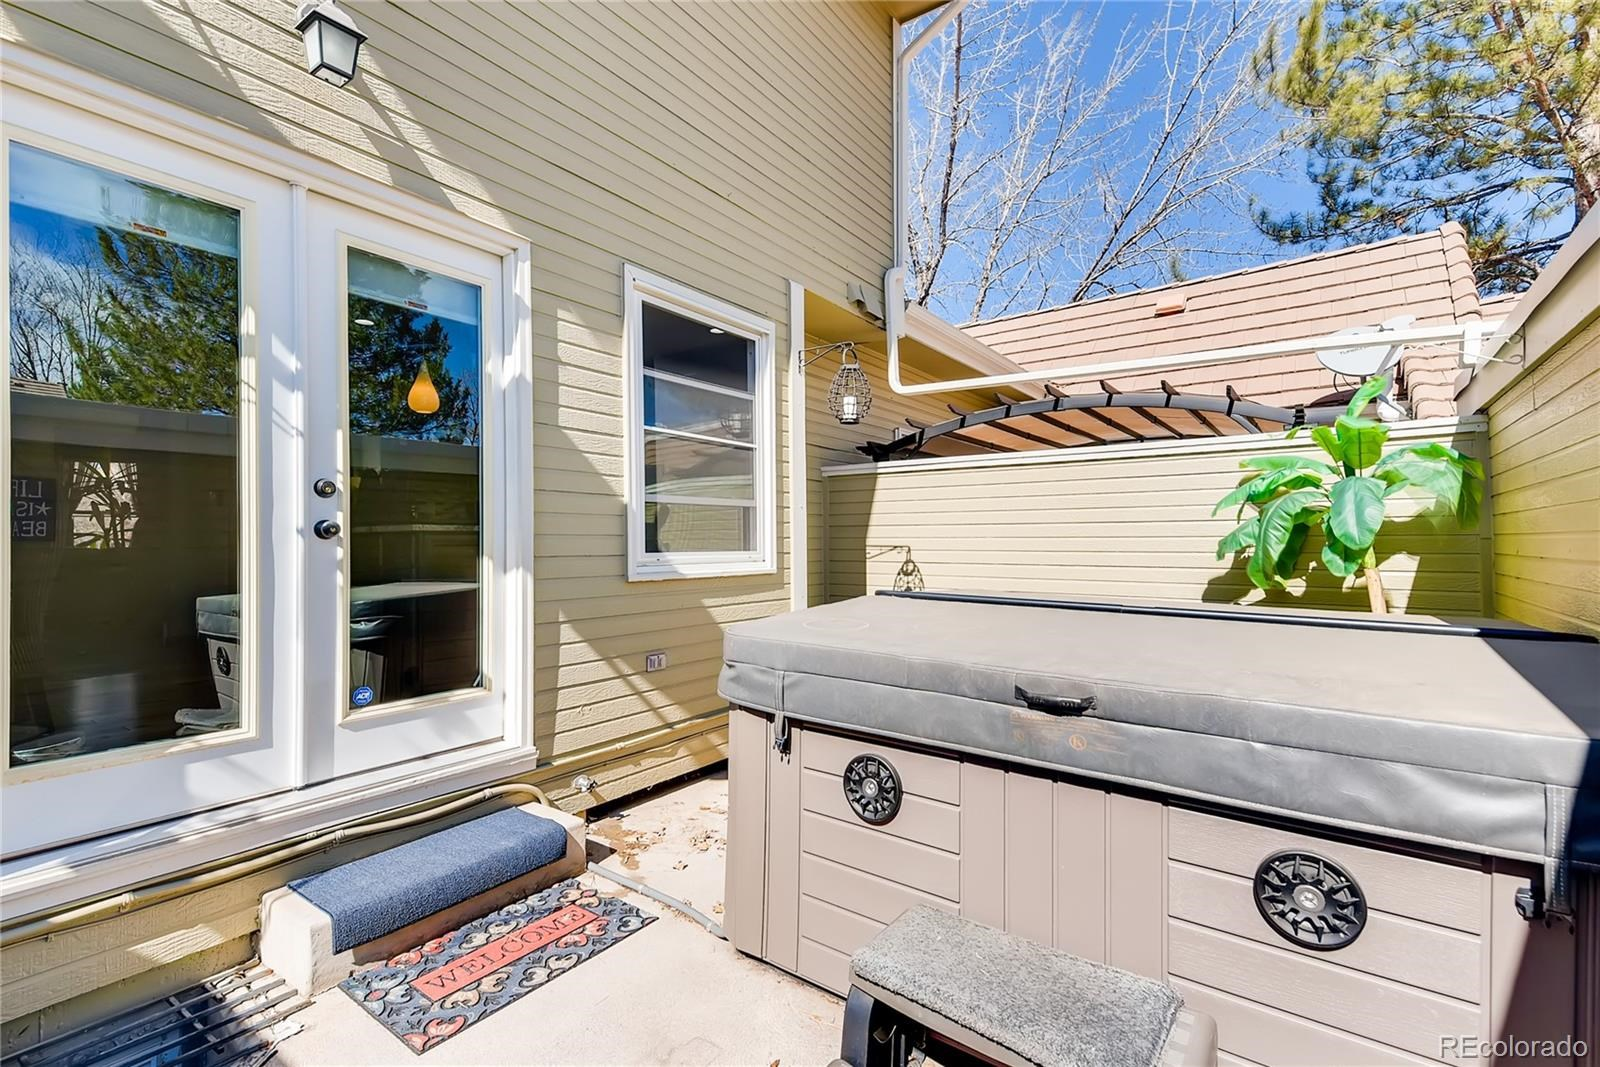 MLS# 6910180 - 22 - 2336 Ranch Drive, Westminster, CO 80234